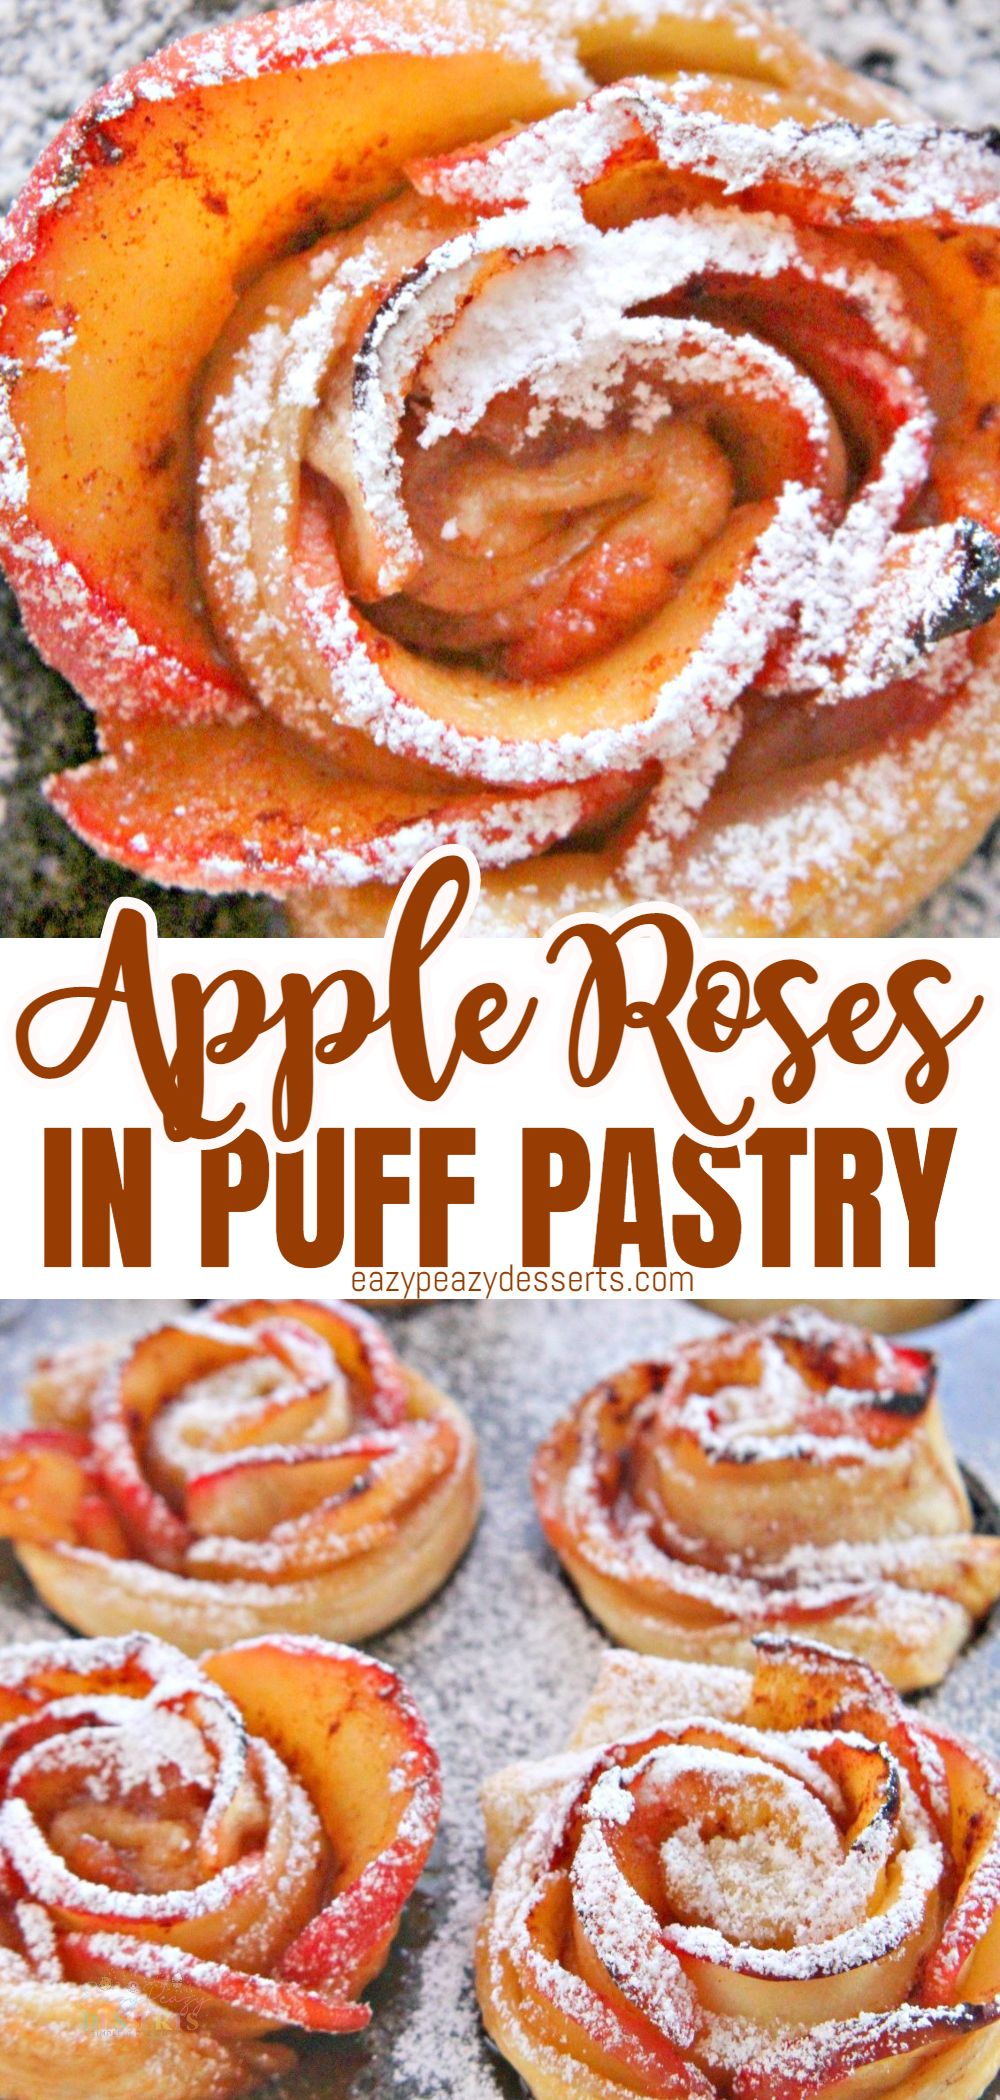 This apple roses pastry is the perfect blend of deliciousness, and the appearance of these delightful puff pastry roses is a true luxury for any party with friends or co-workers. The rose even makes them a very romantic dessert for a date night! via @eazypeazydesserts